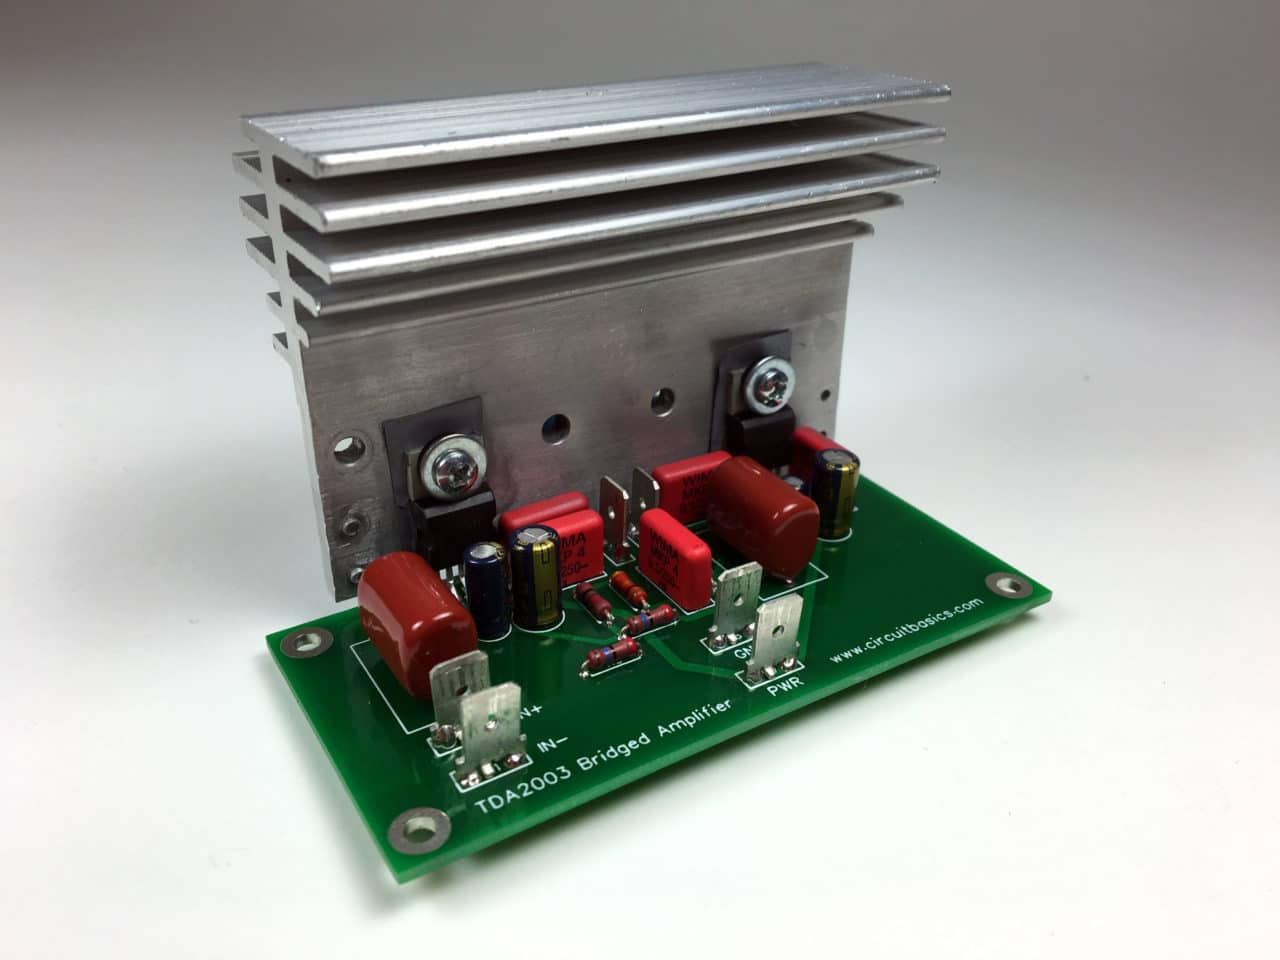 Build A Great Sounding Audio Amplifier With Bass Boost From The Lm386 Circuitsaudio Circuit Diagram Guide For Building Tda2003 Bridged And Stereo Amplifiers